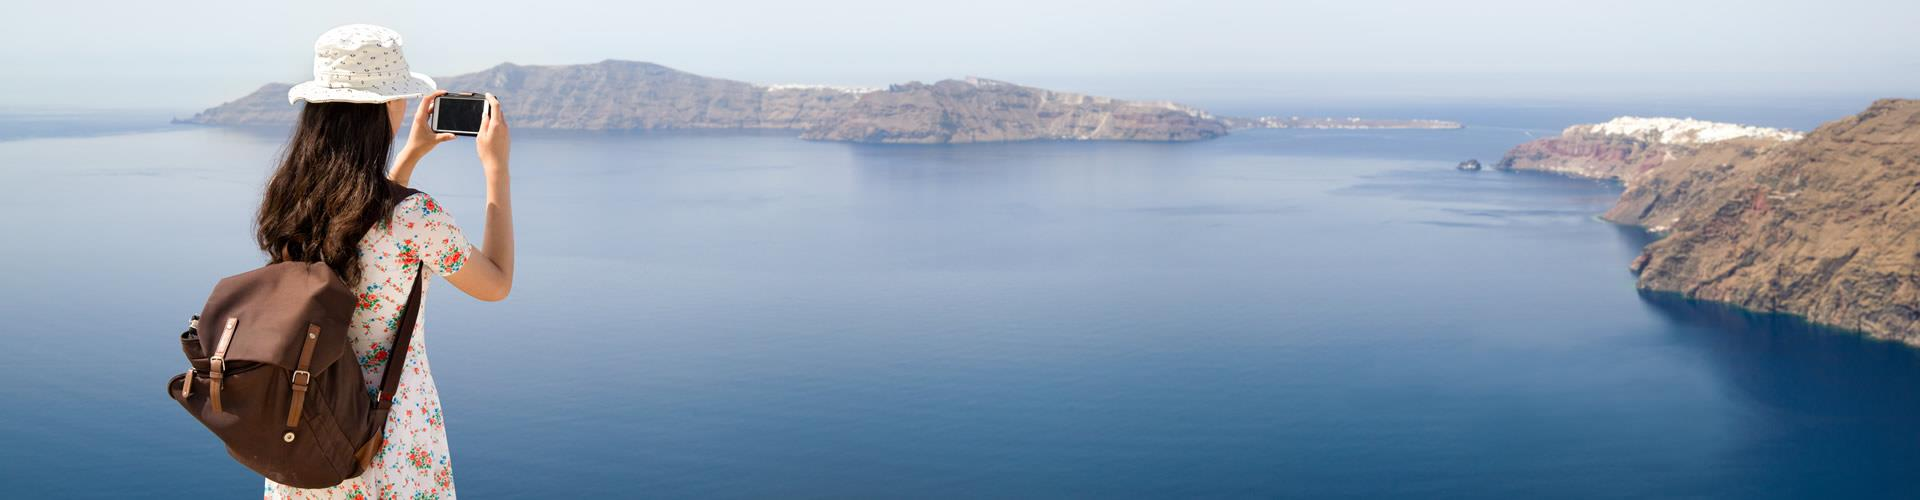 First Time in Santorini: Things to Know before Visiting